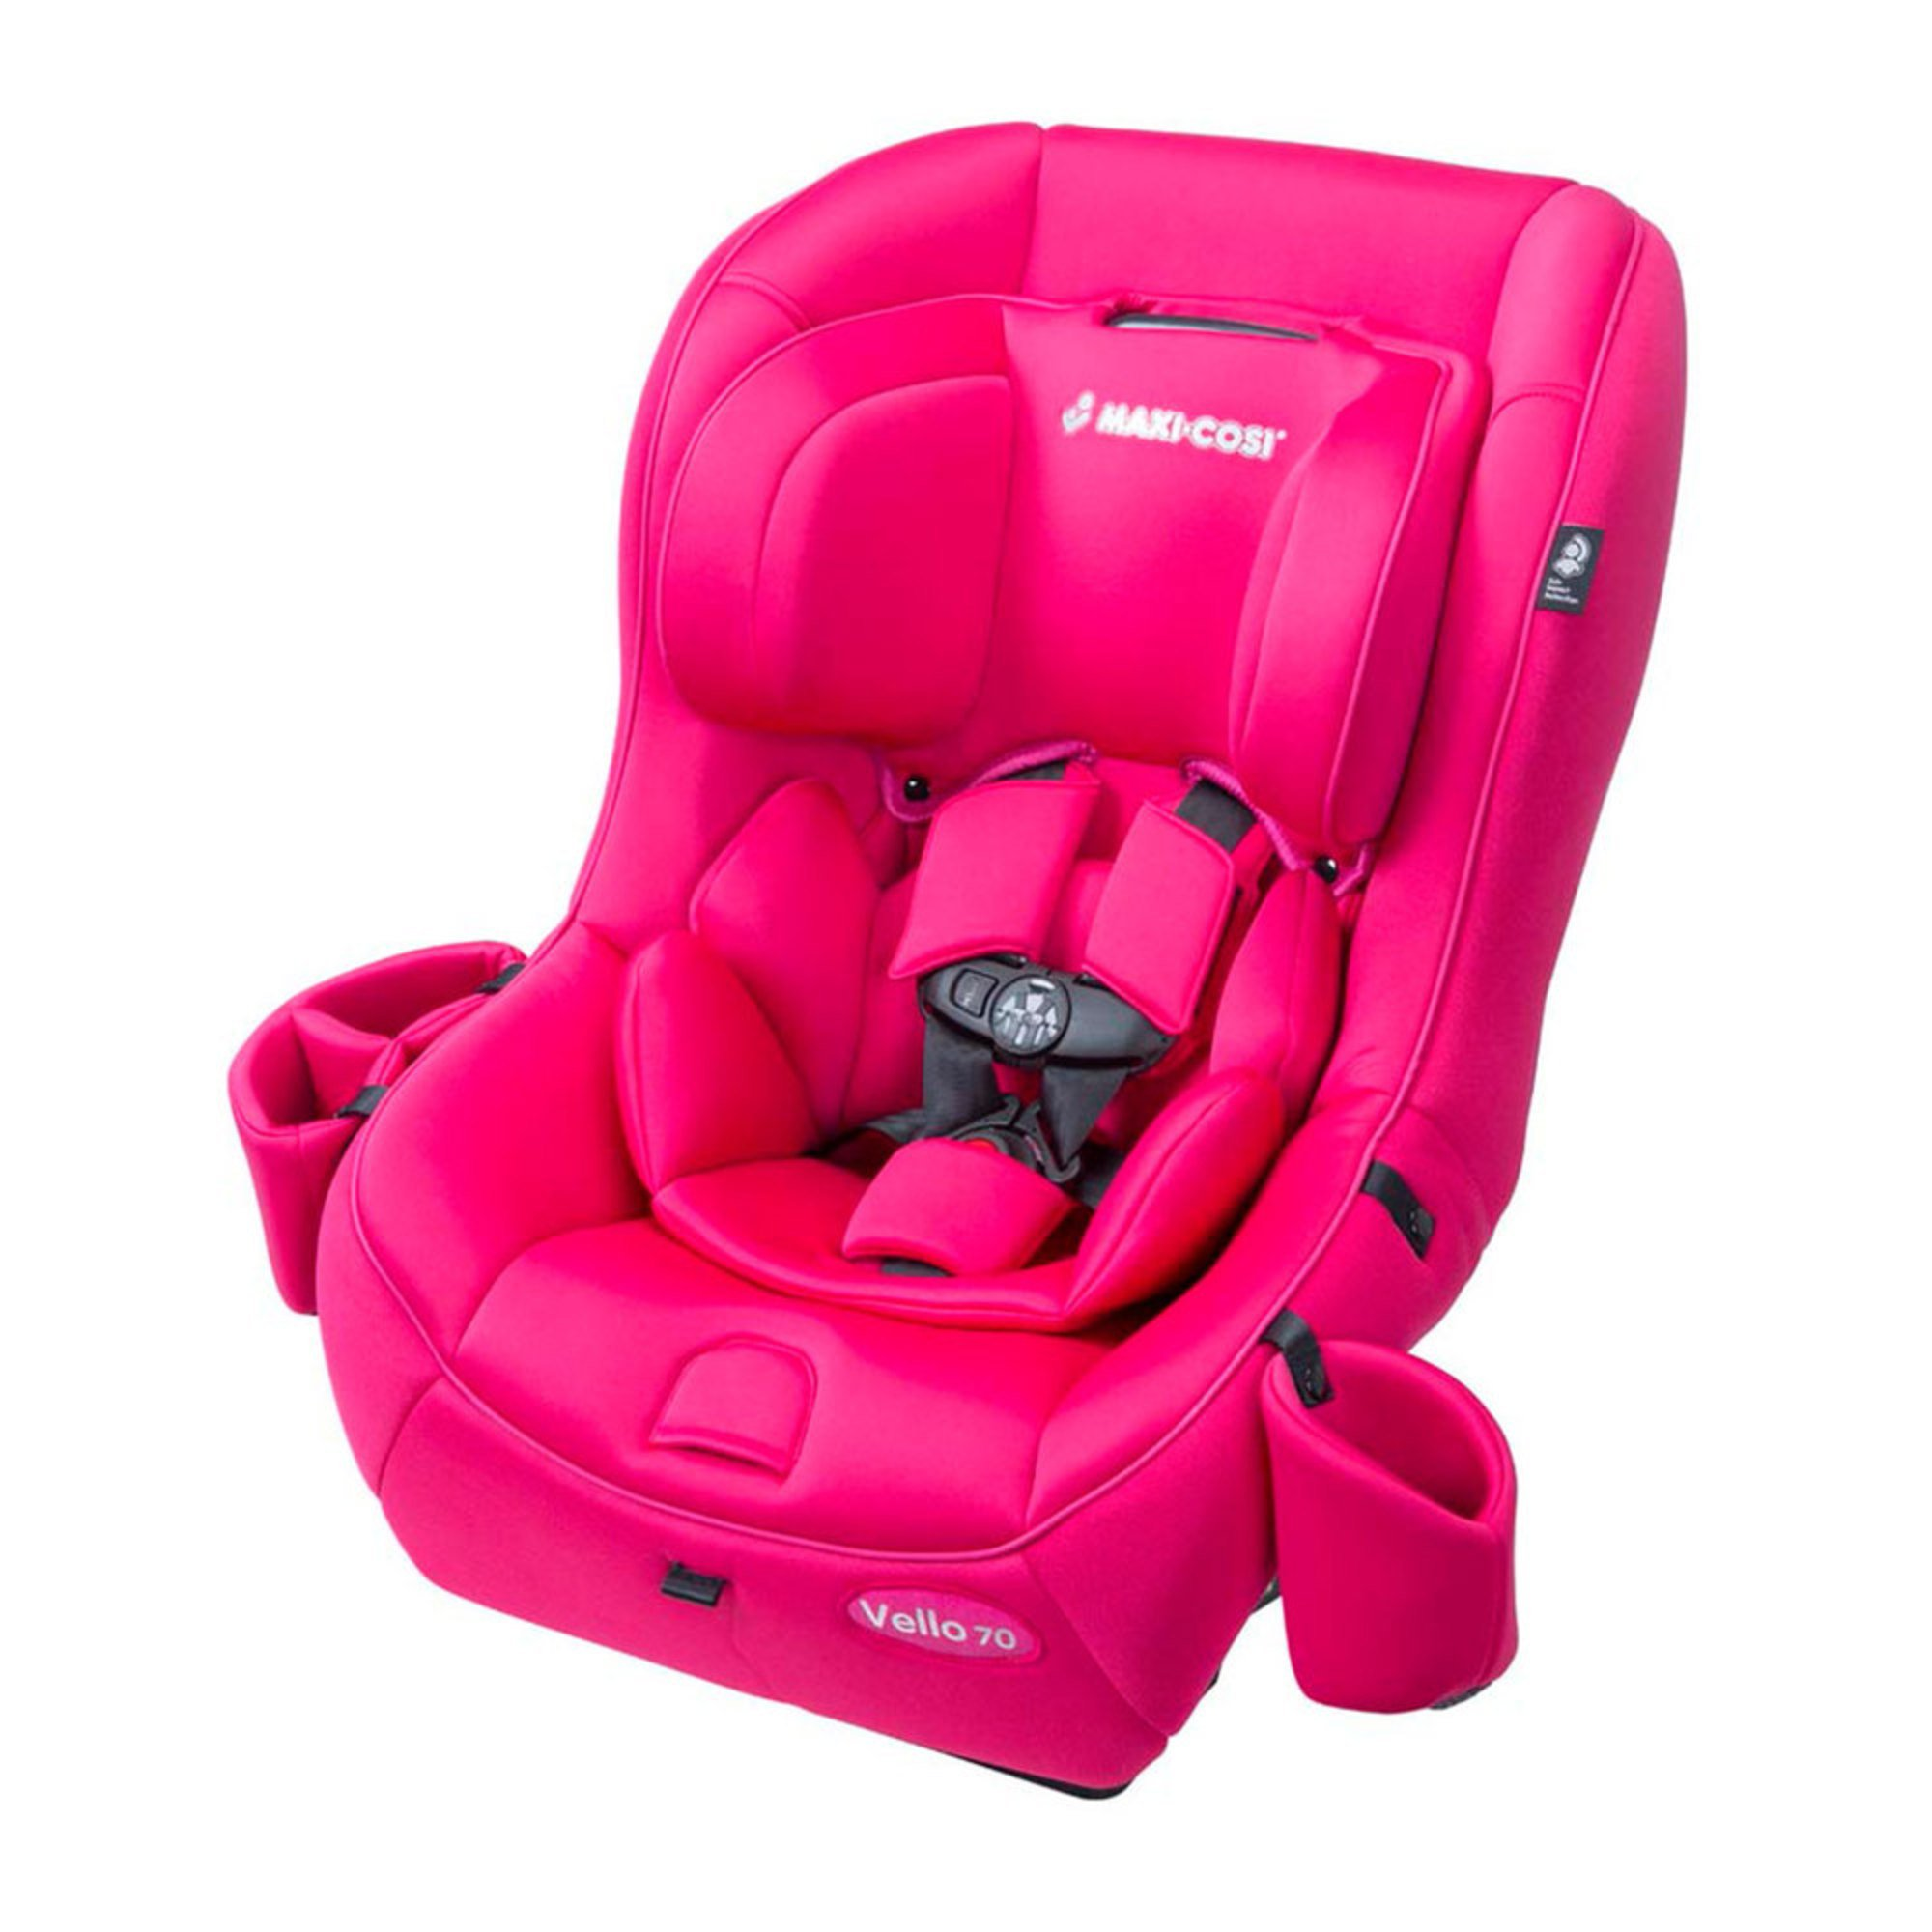 maxi cosi vello 70 convertible car seat pink convertible car seats baby kids toys shop. Black Bedroom Furniture Sets. Home Design Ideas